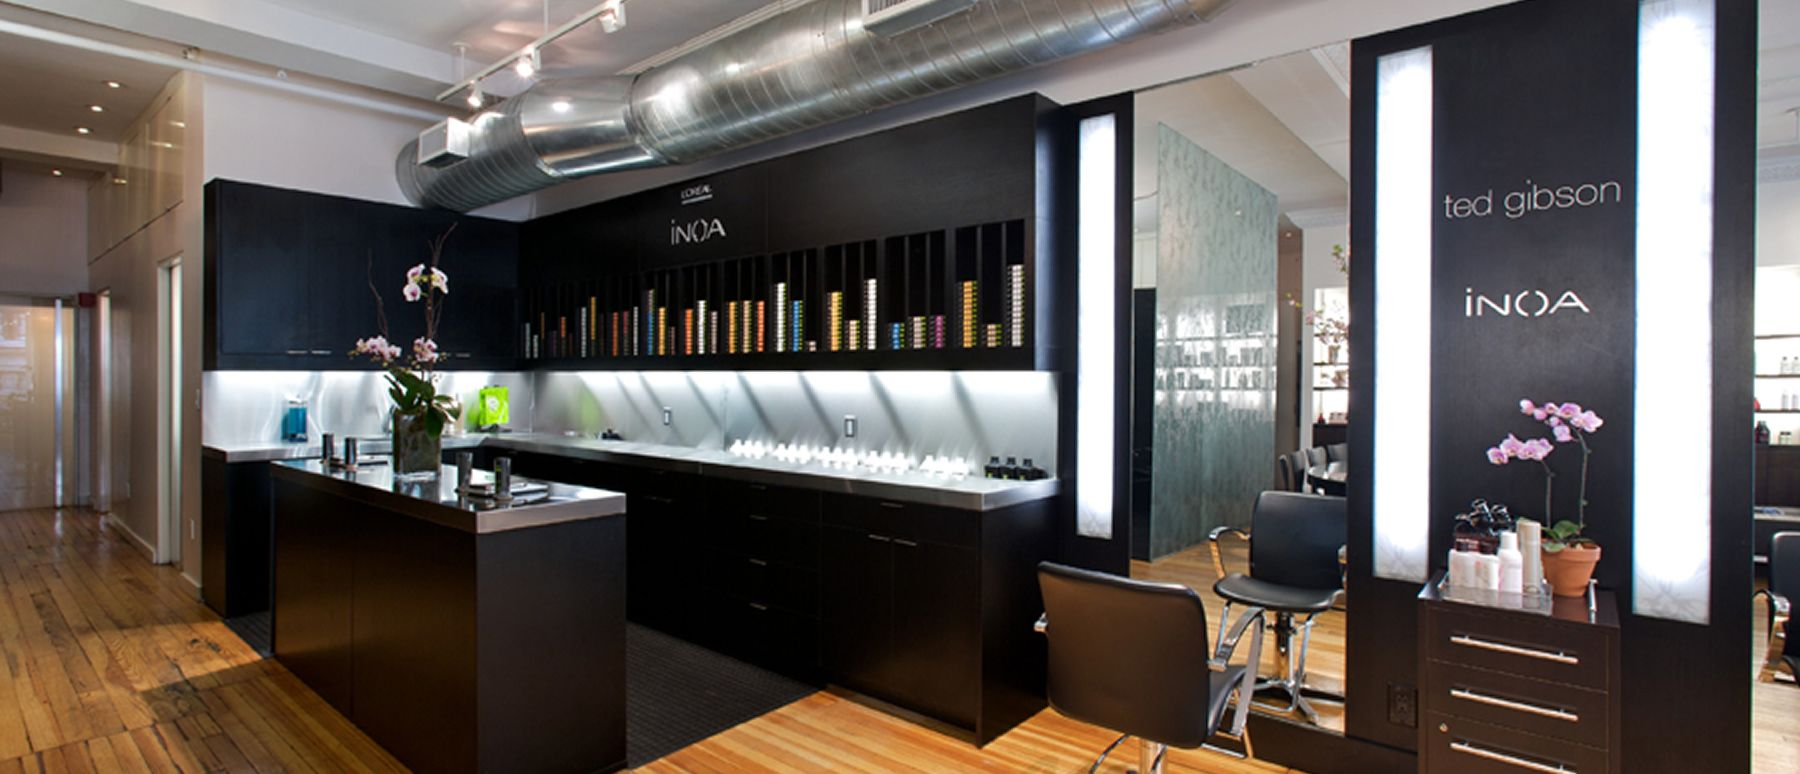 Salon Style New Yorkais a minimalist space for men and women to escape the rush of